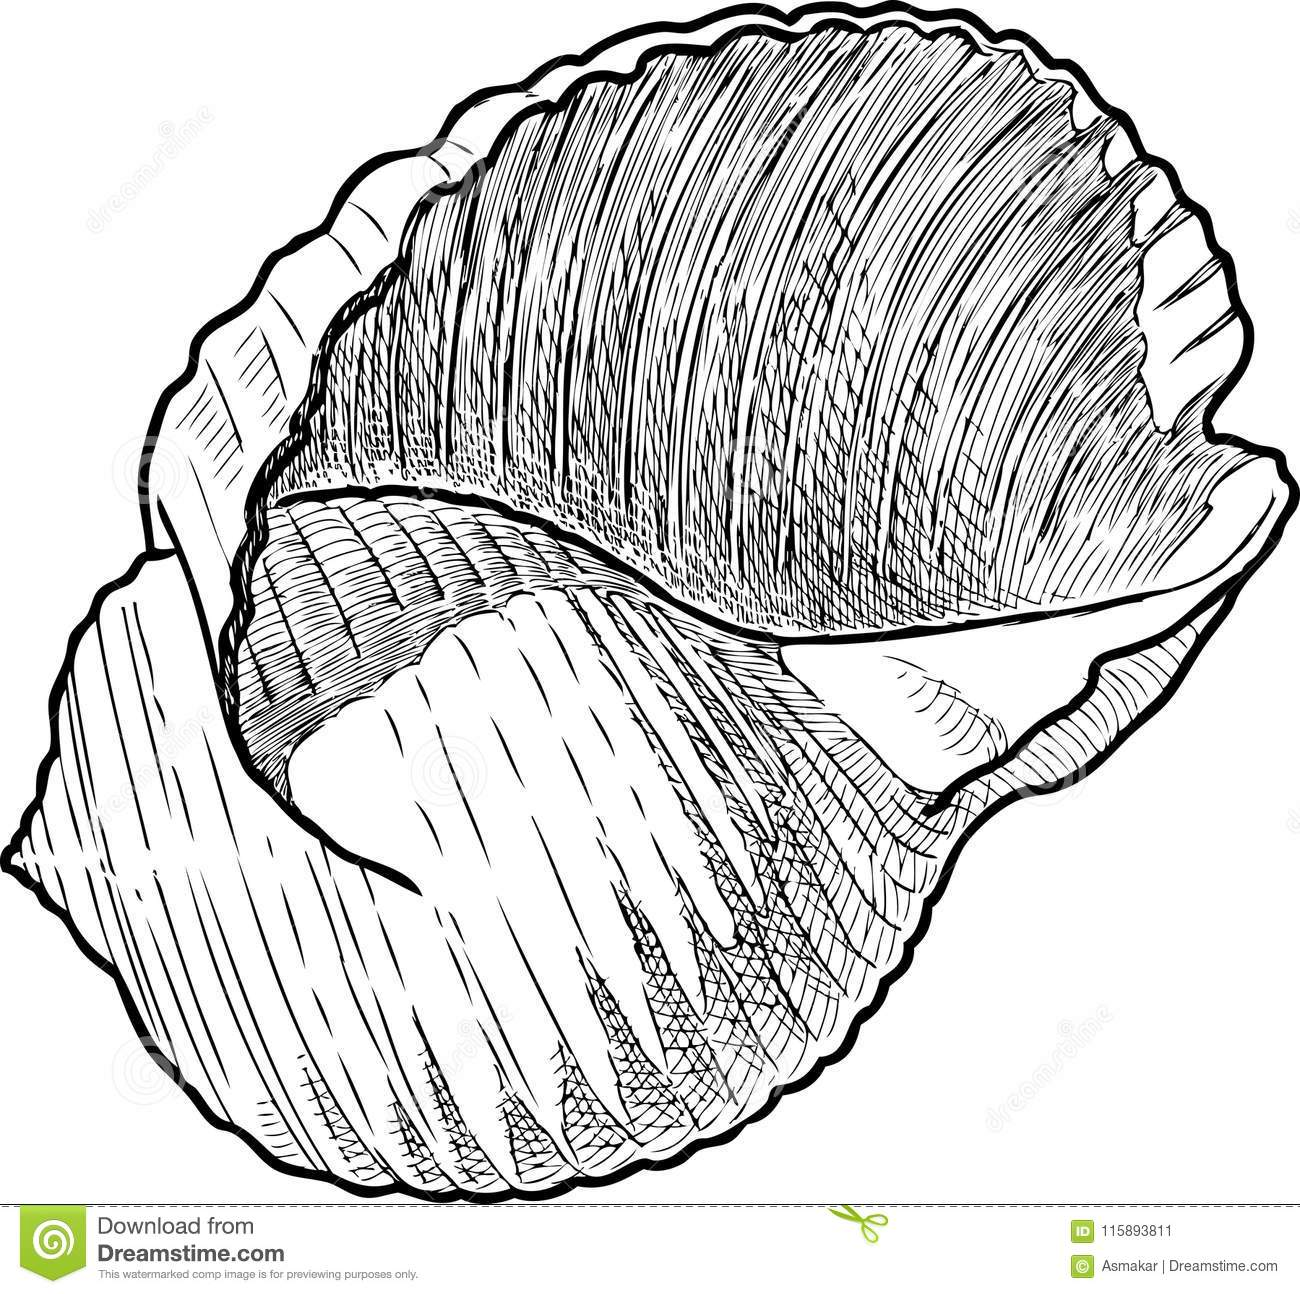 A hand drawing of a seashell